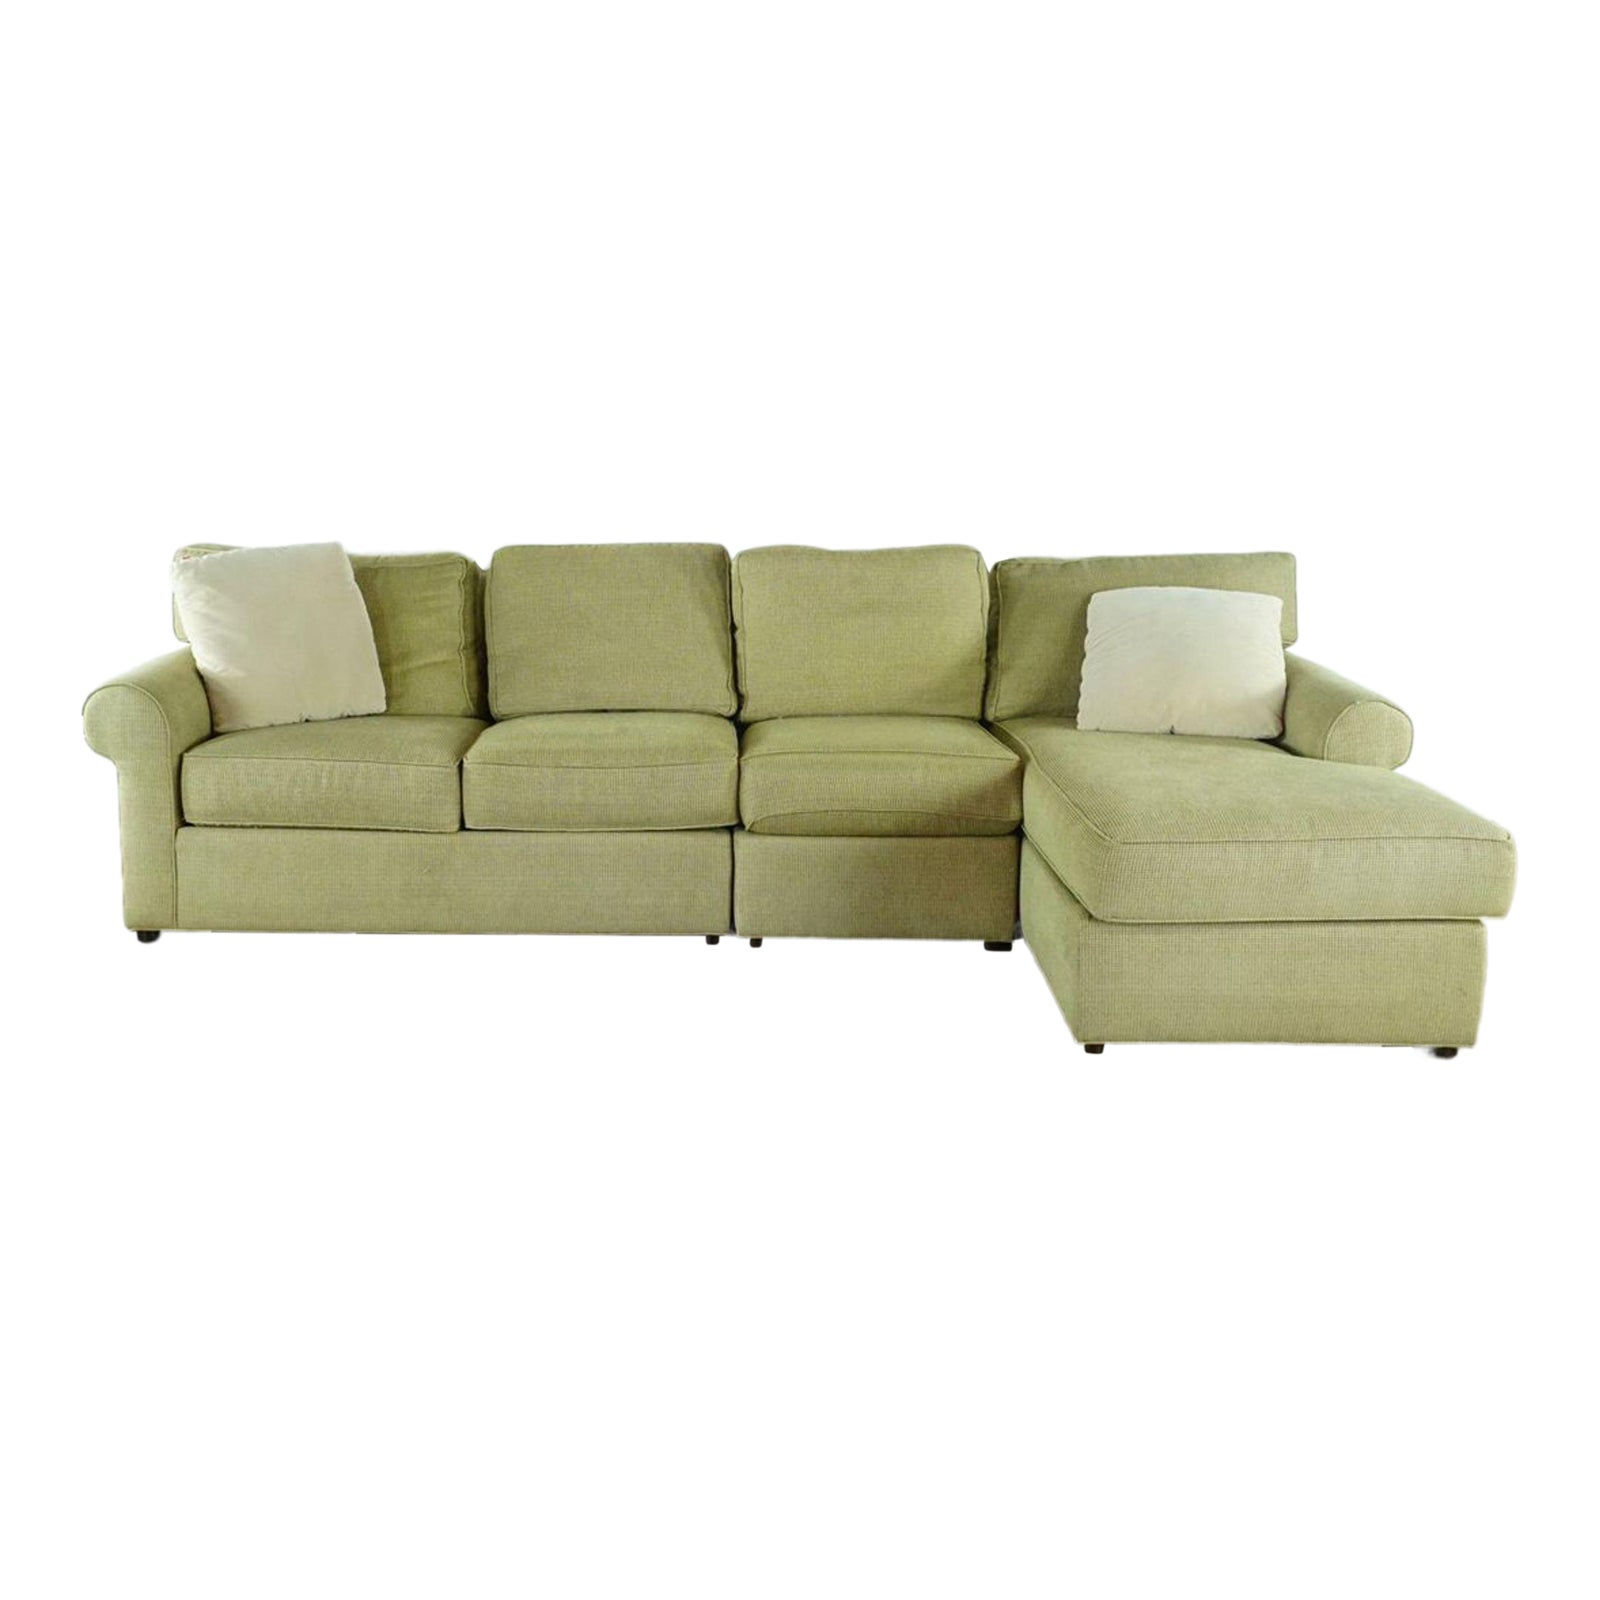 Ethan Allen Upholstered Sectional Sofa